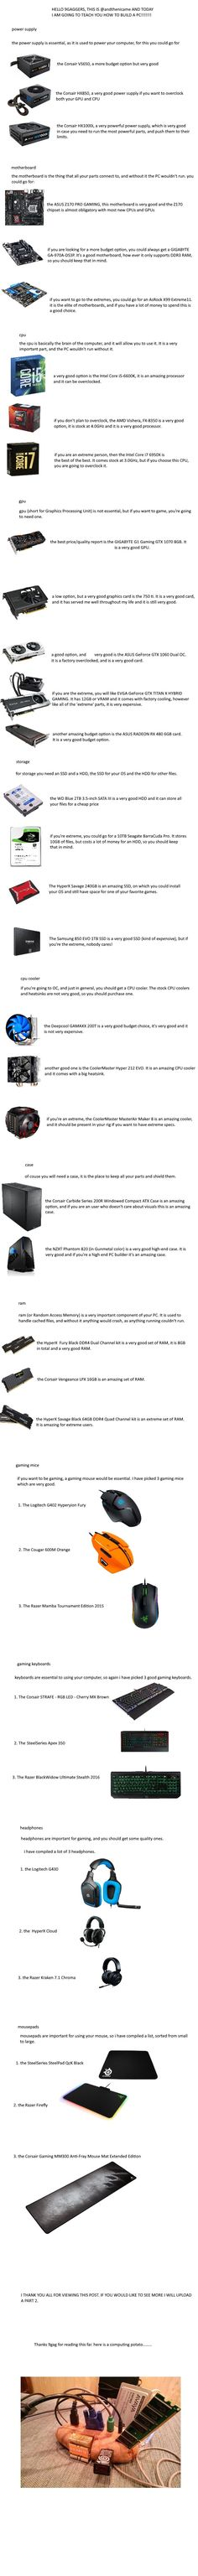 PC Building guide! OC - 9GAG